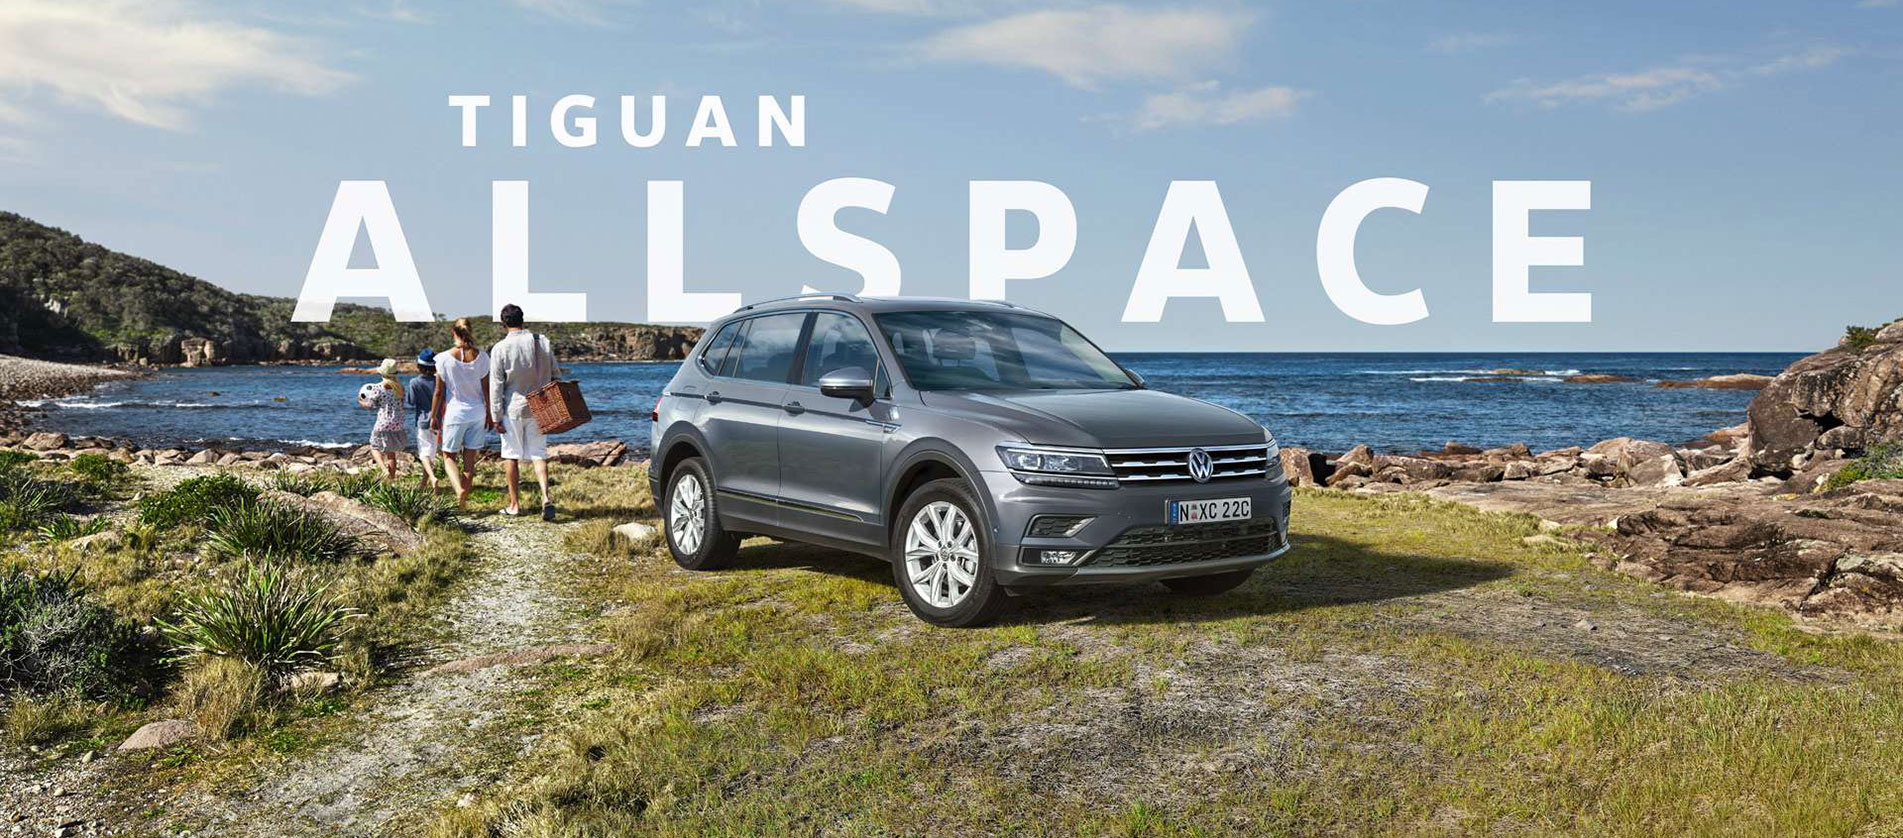 Tiguan Allspace Bayford Volkswagen Fairfield Fuel Filter The New 7 Seat